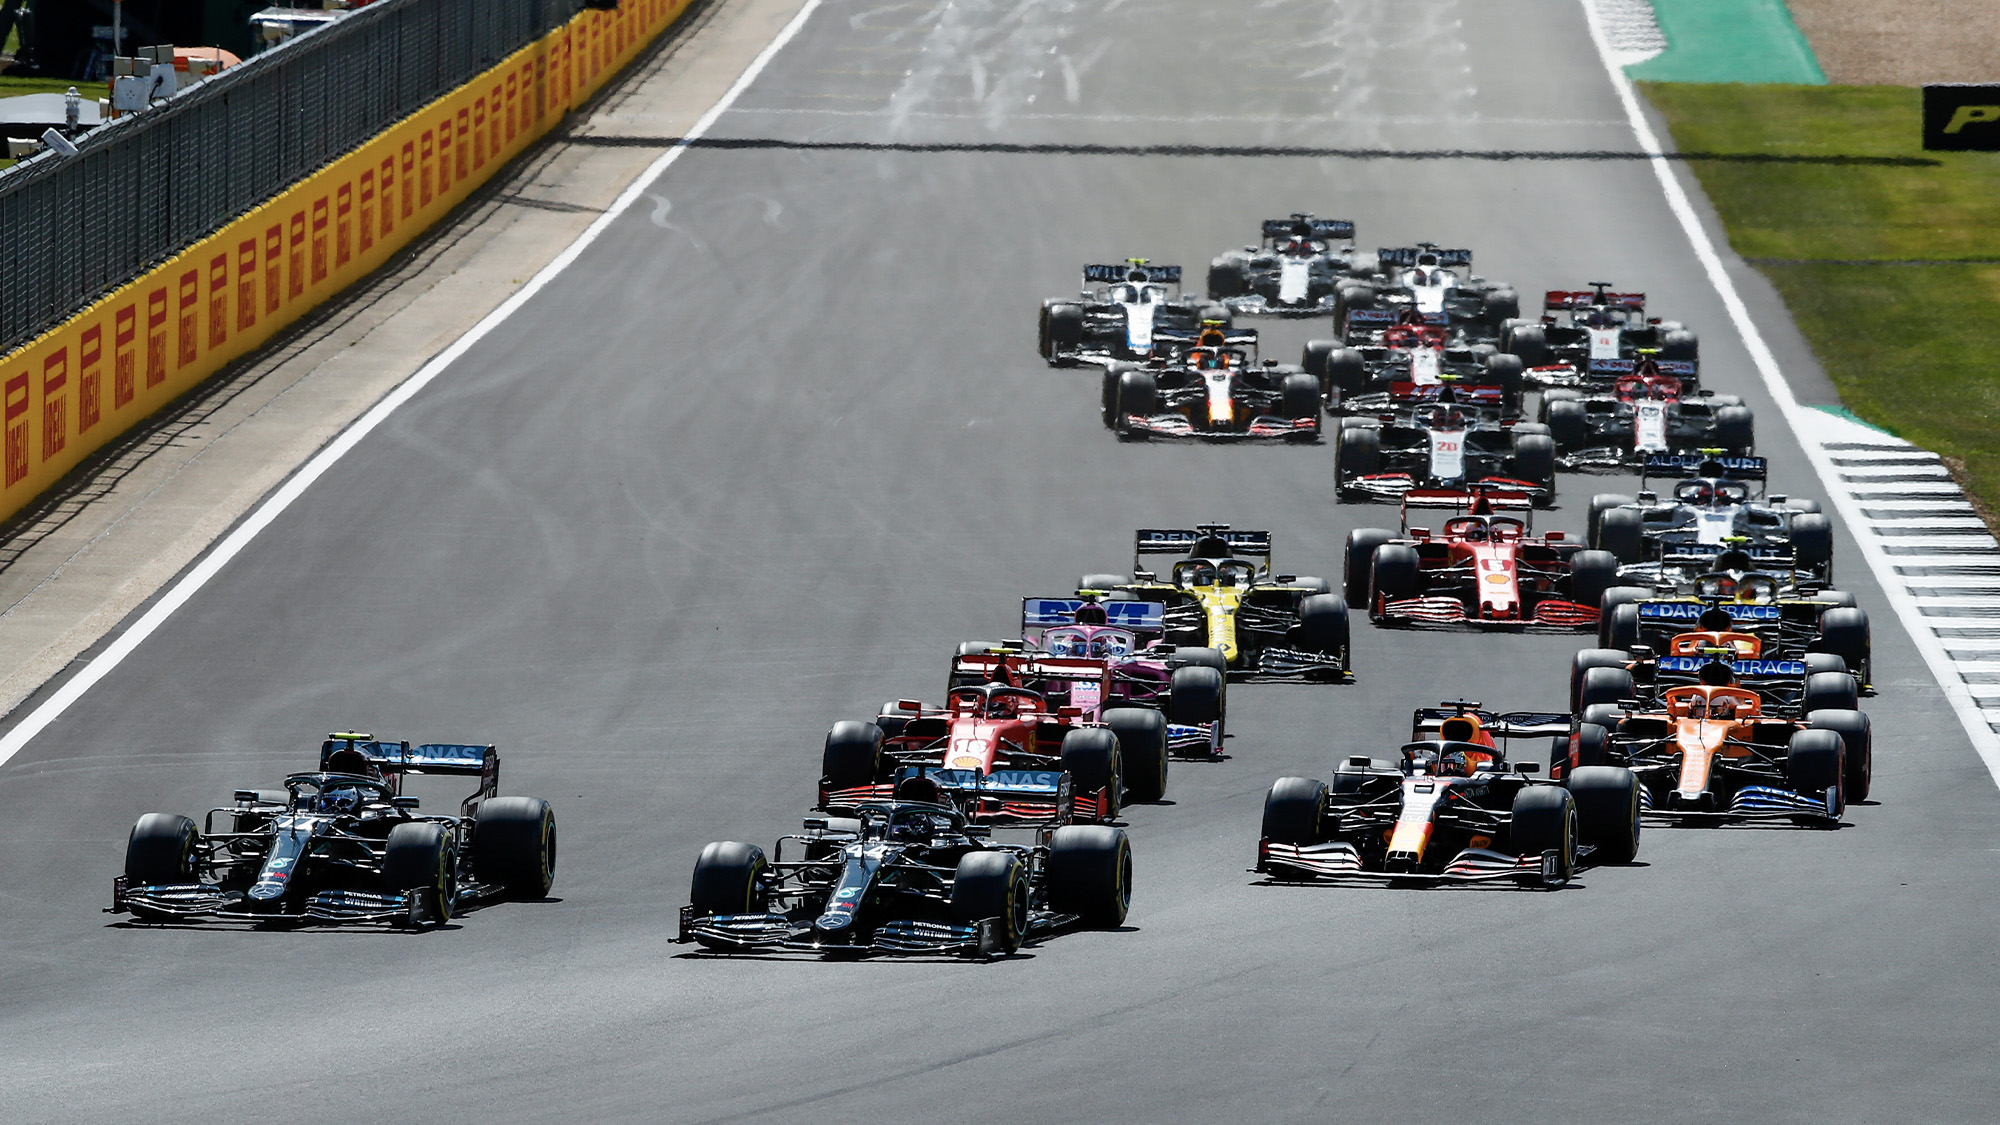 Lewis Hamilton leads into the first corner at Silverstone after the start of the 2020 F1 British Grand Prix